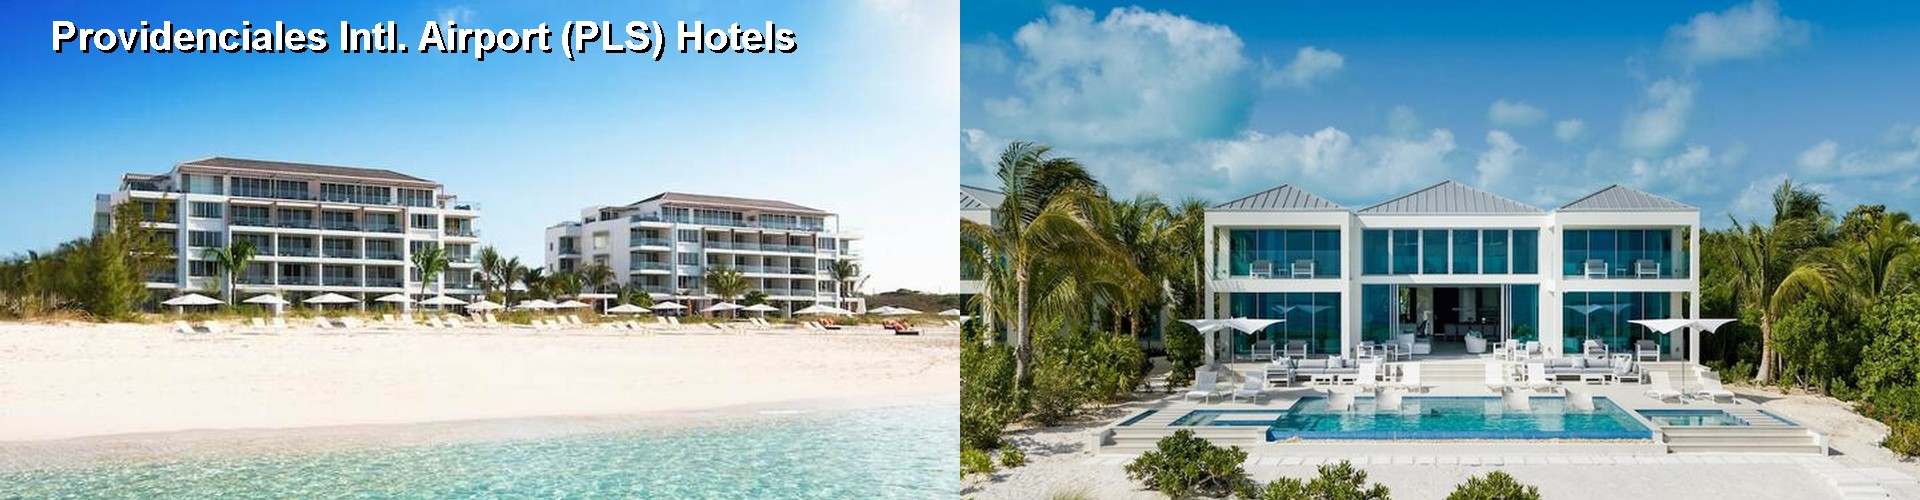 5 Best Hotels near Providenciales Intl. Airport (PLS)